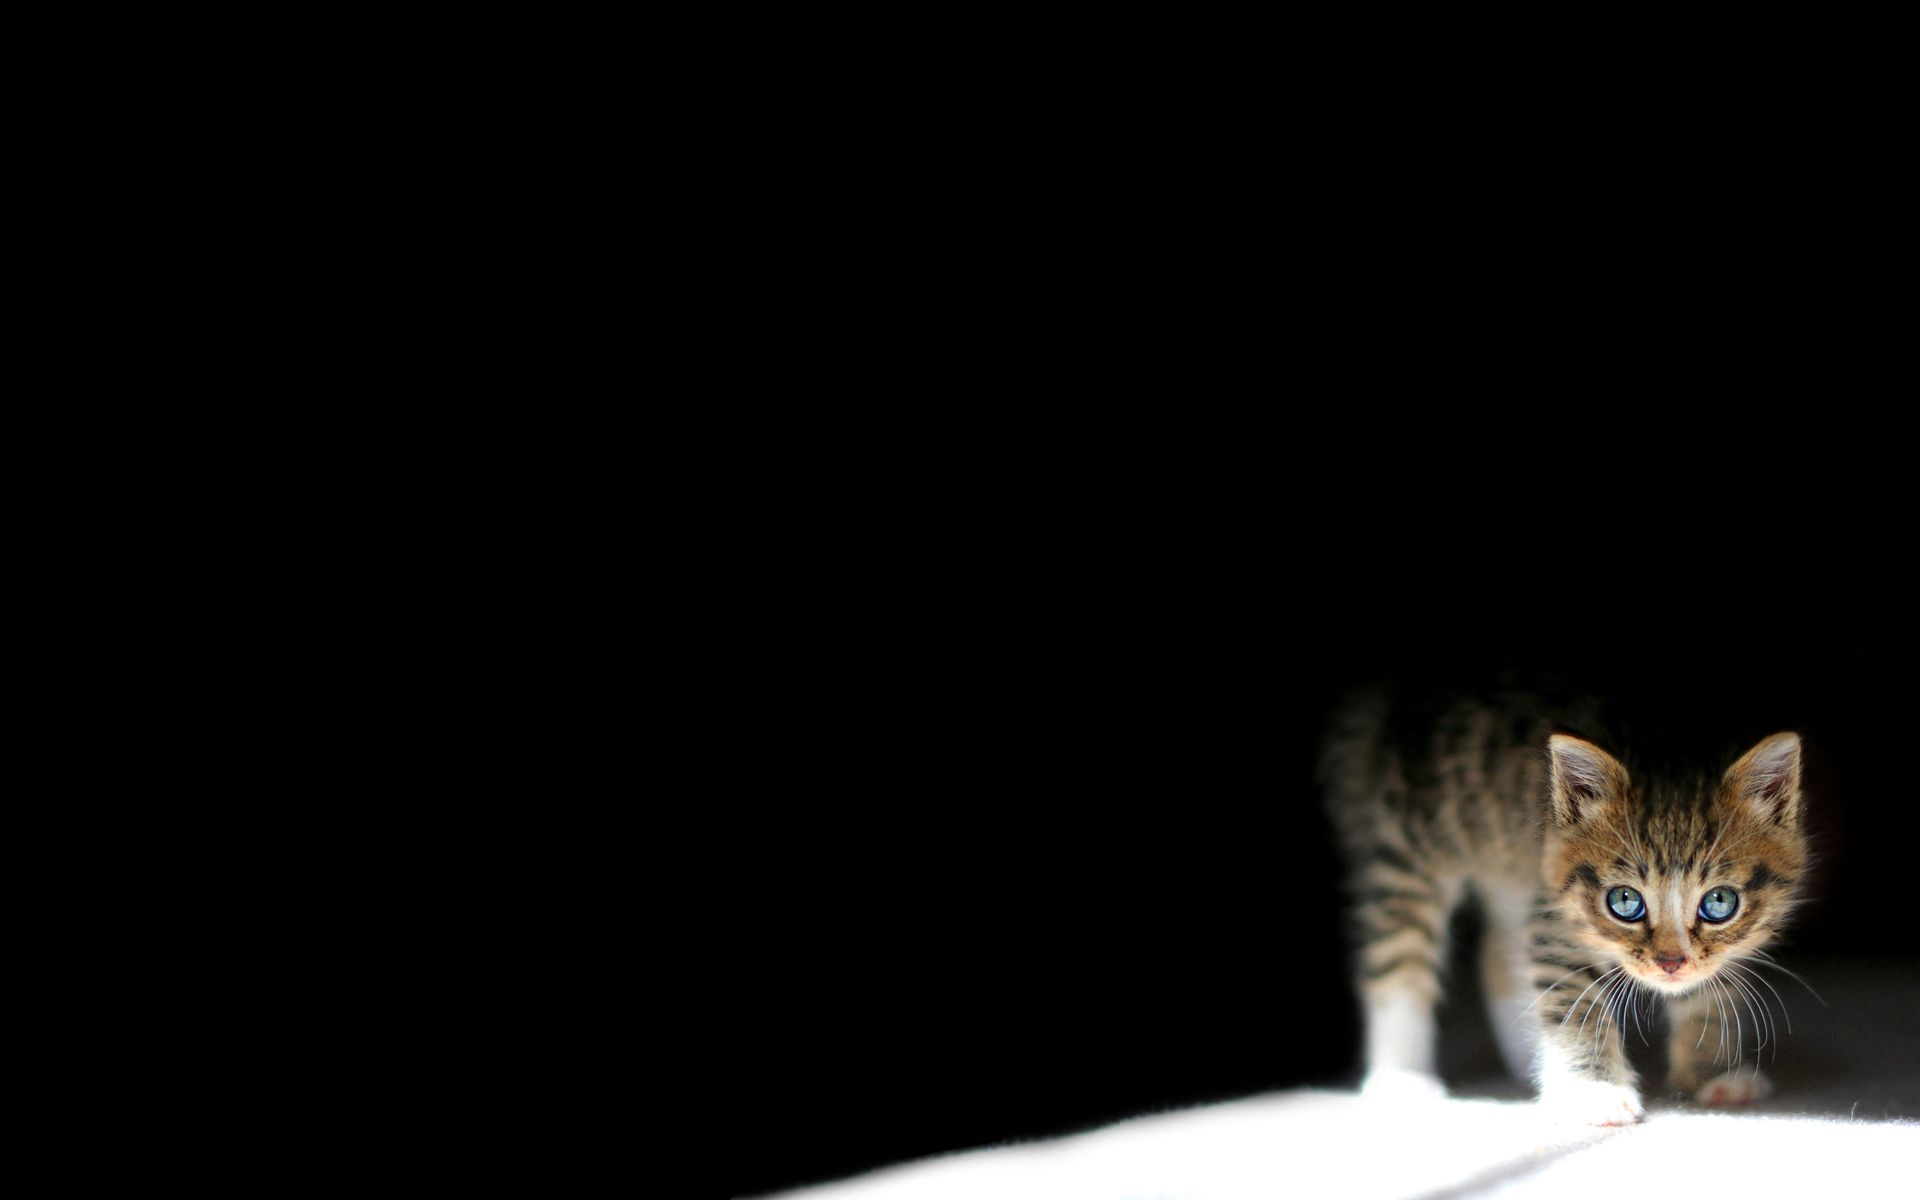 62615 download wallpaper Animals, Kitty, Kitten, Dark, To Lie Down, Lie screensavers and pictures for free